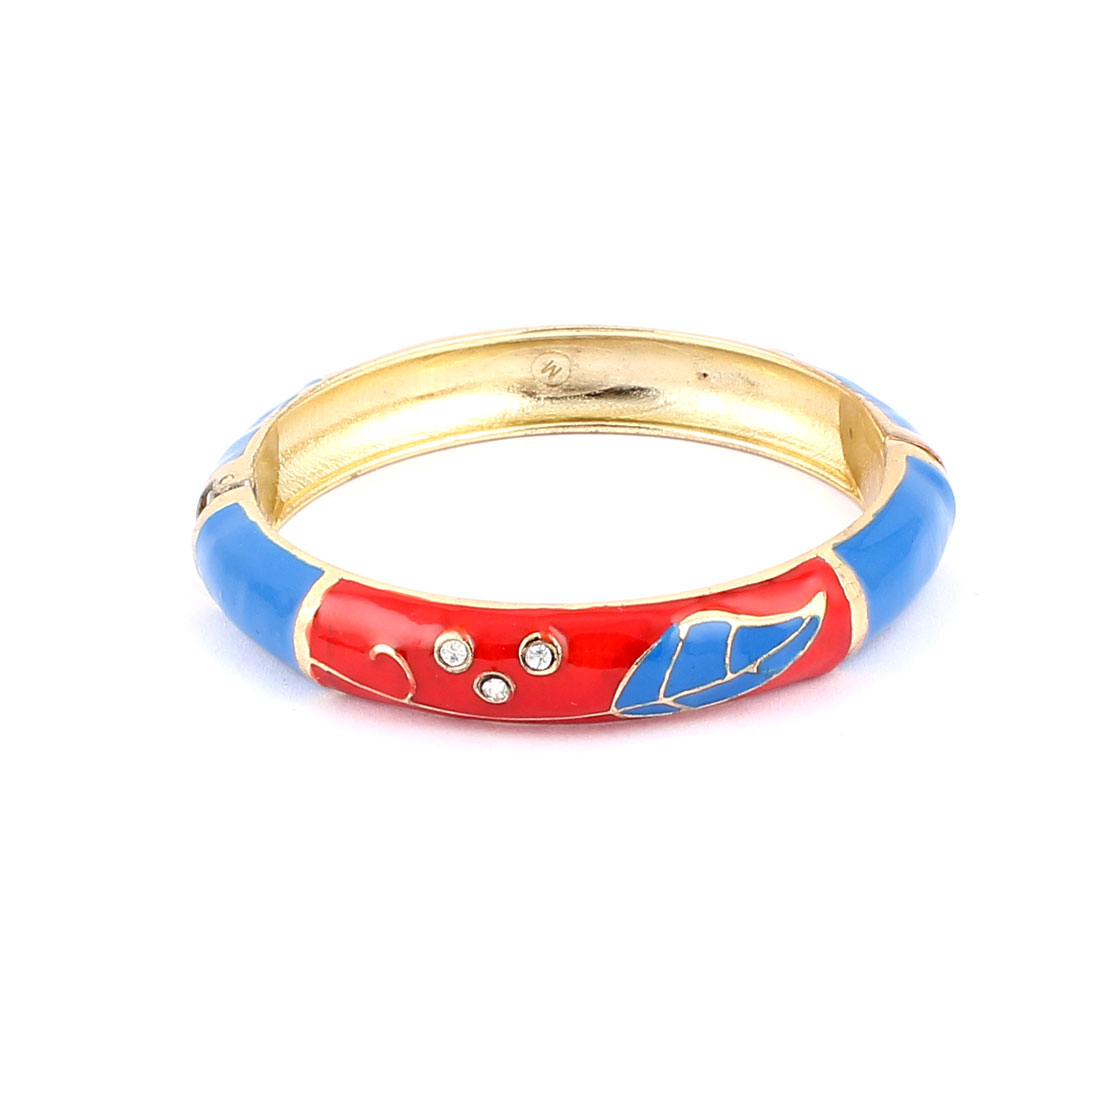 Woman Lady Spring Hinged Round Cuff Leaf Pattern Enamel Bracelet Bangle Blue Red